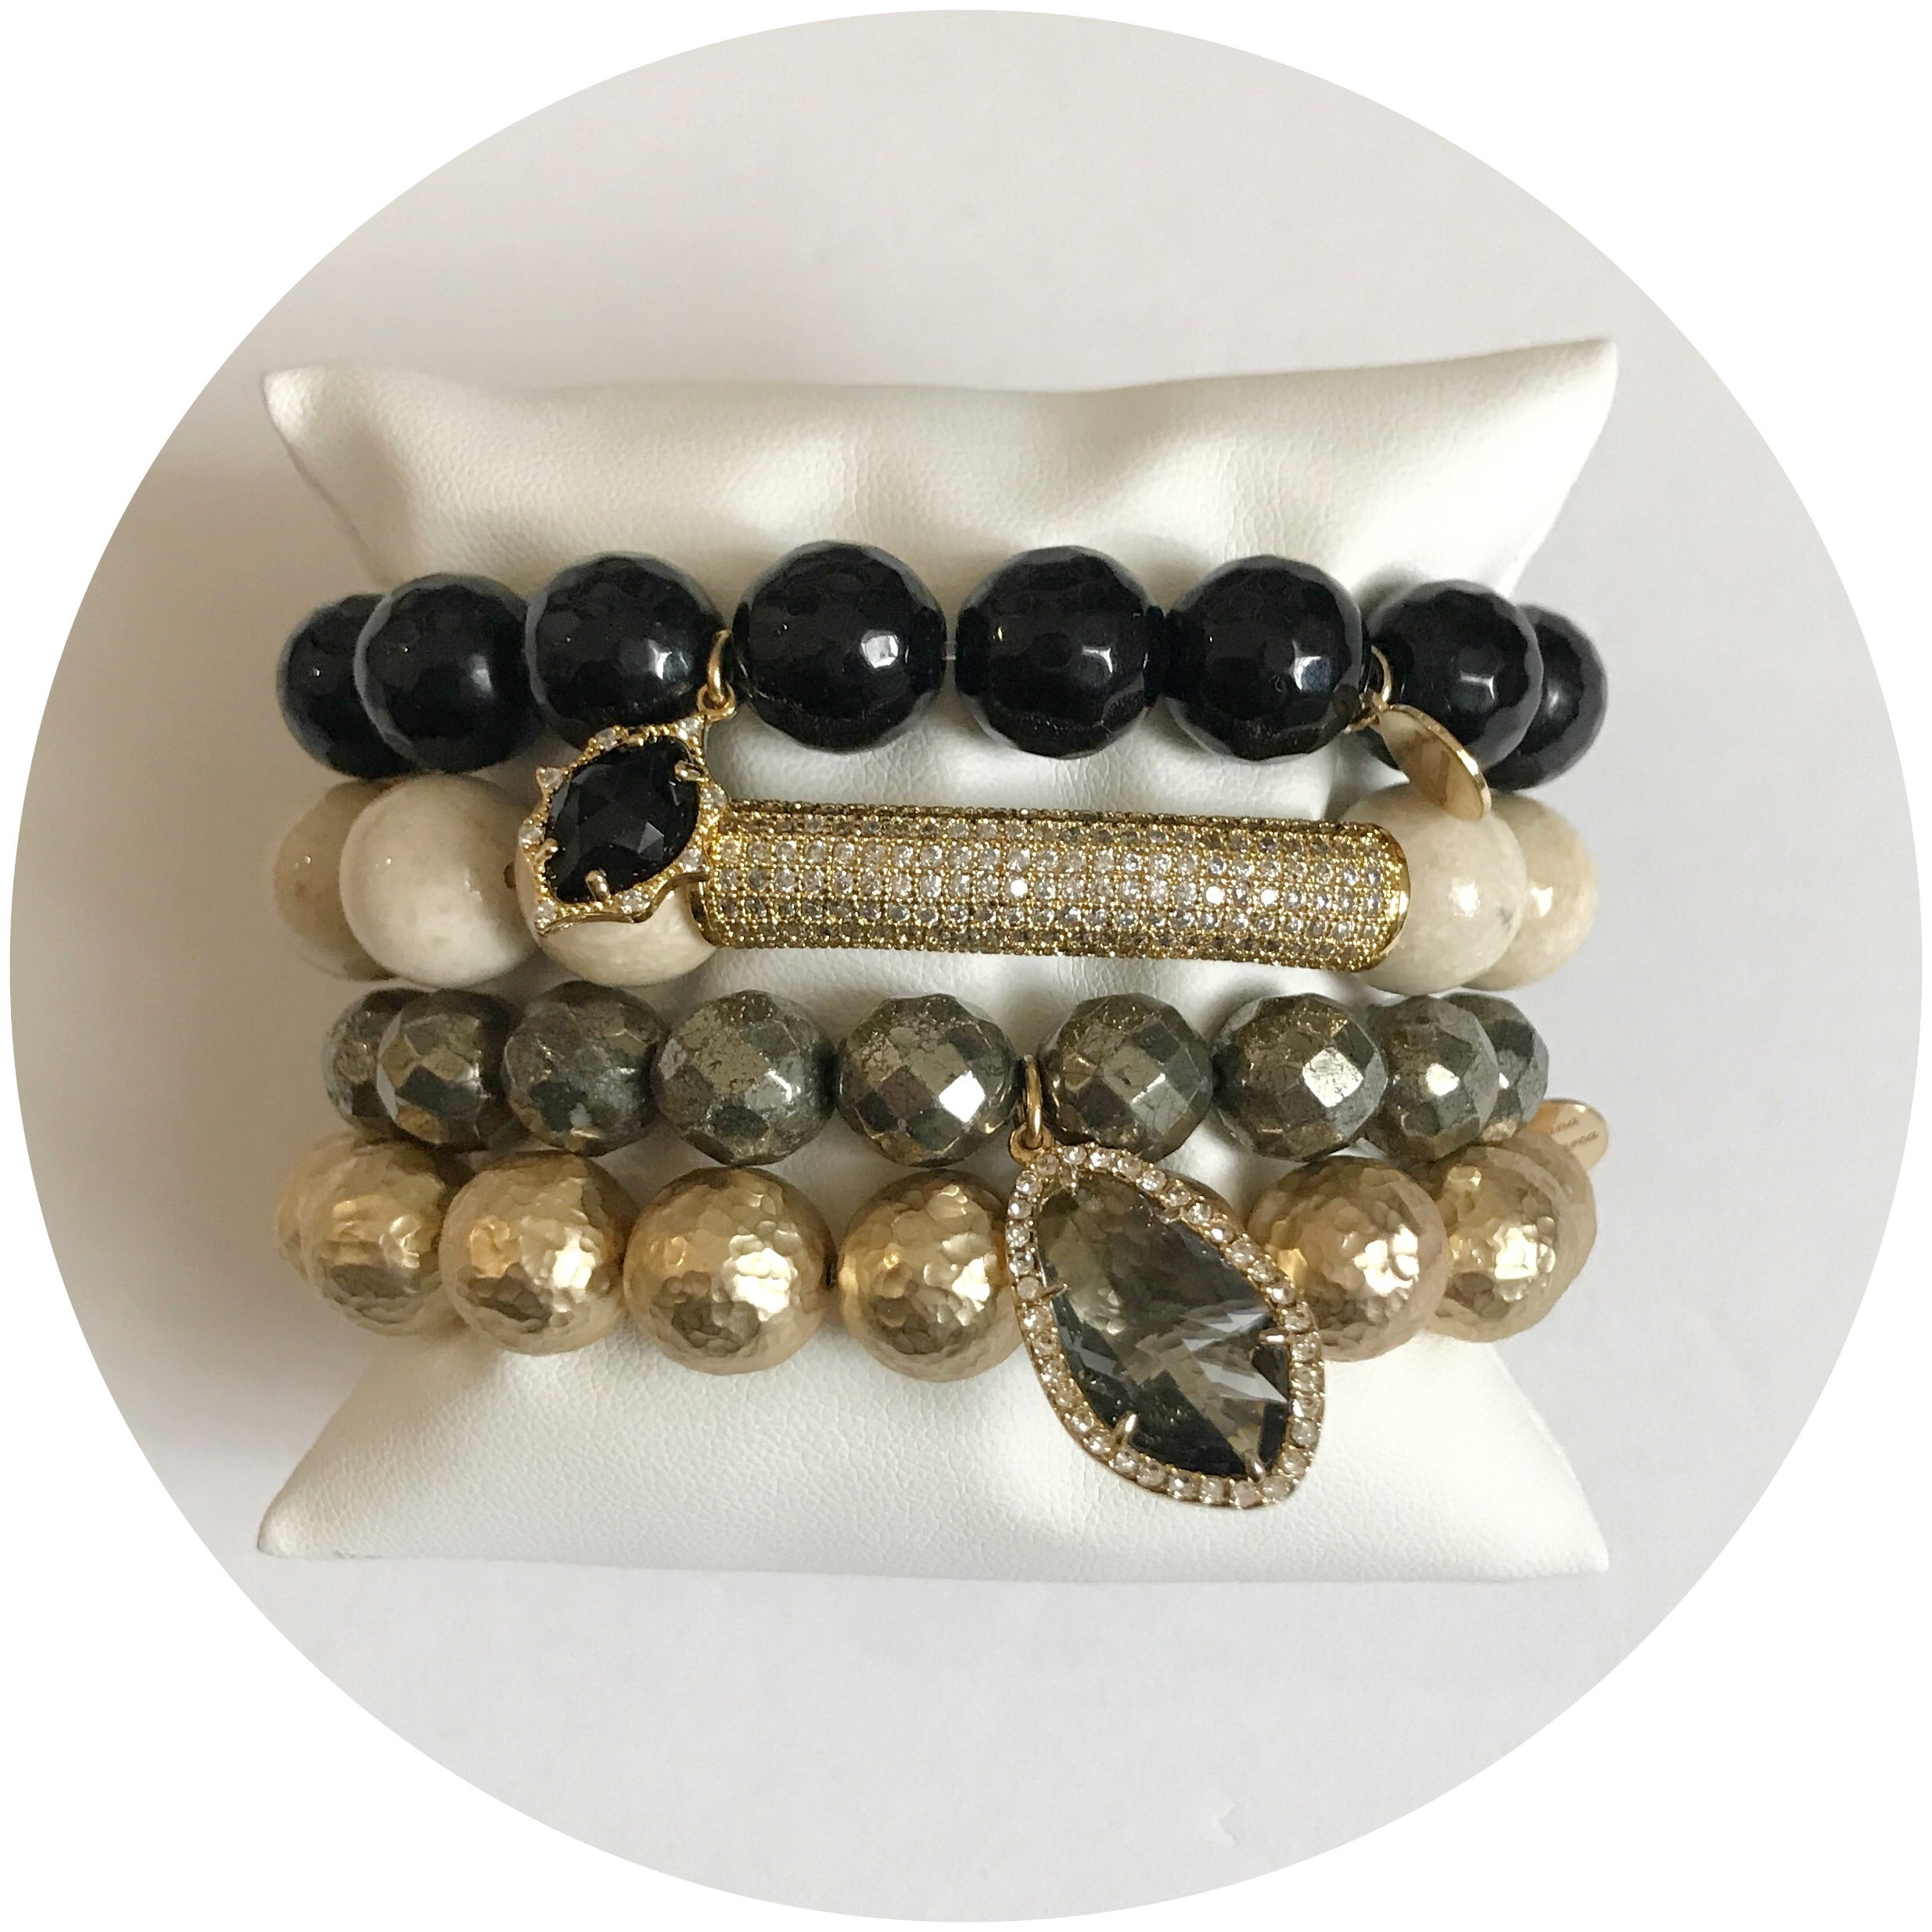 24k Magic Armparty - Oriana Lamarca LLC